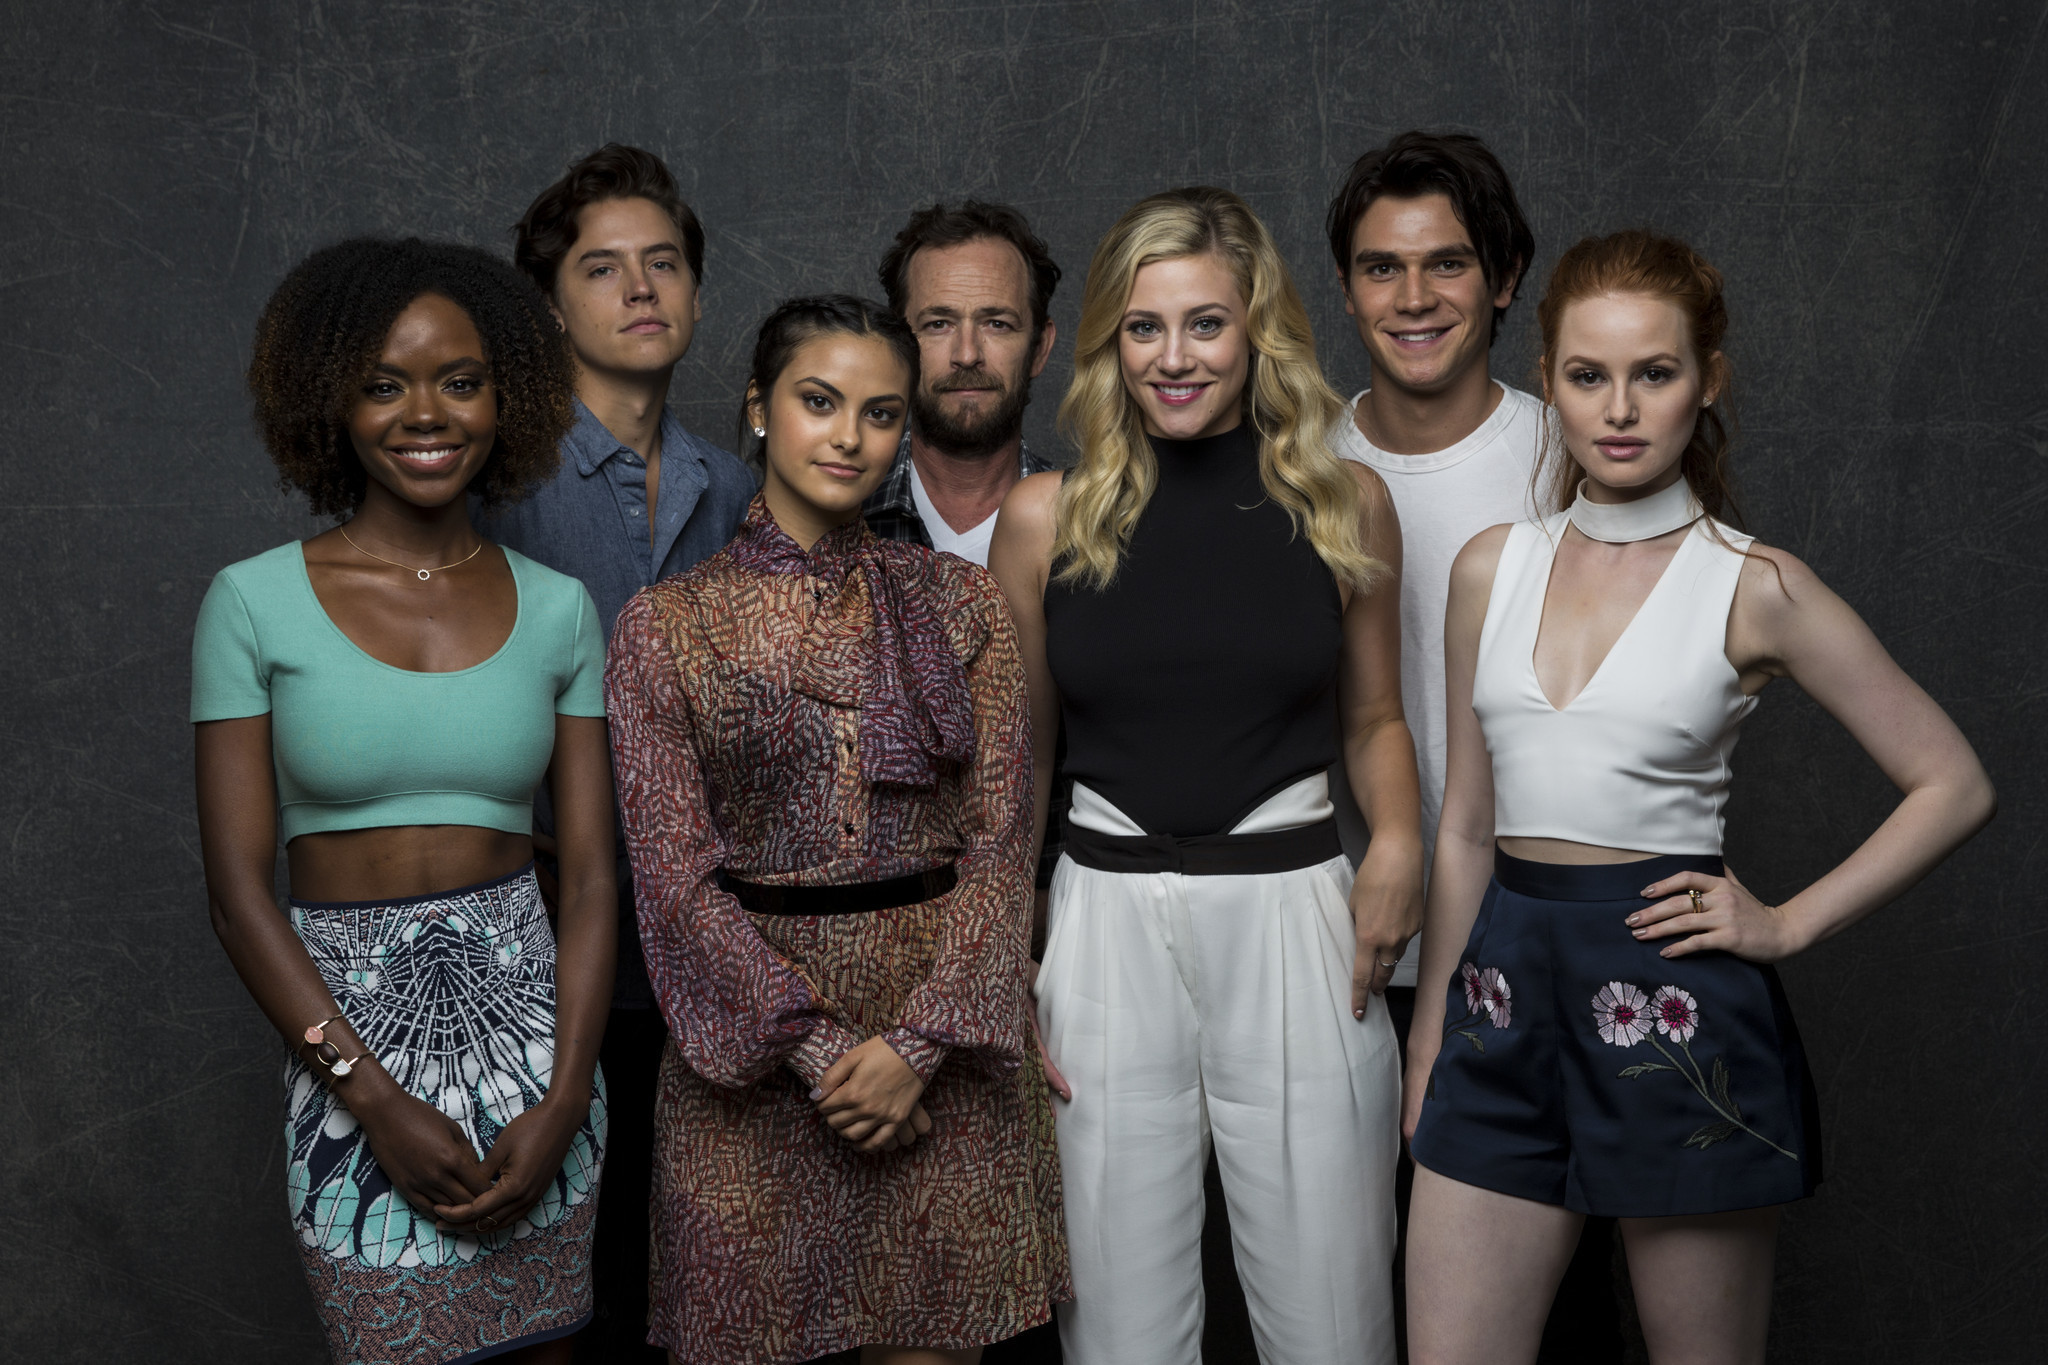 riverdale singles & personals So cole and lili there's been a lot of rumors of you guys dating are you dating, the fan asked the actors while the rest of the riverdale cast shifted uncomfortably in their seats this.